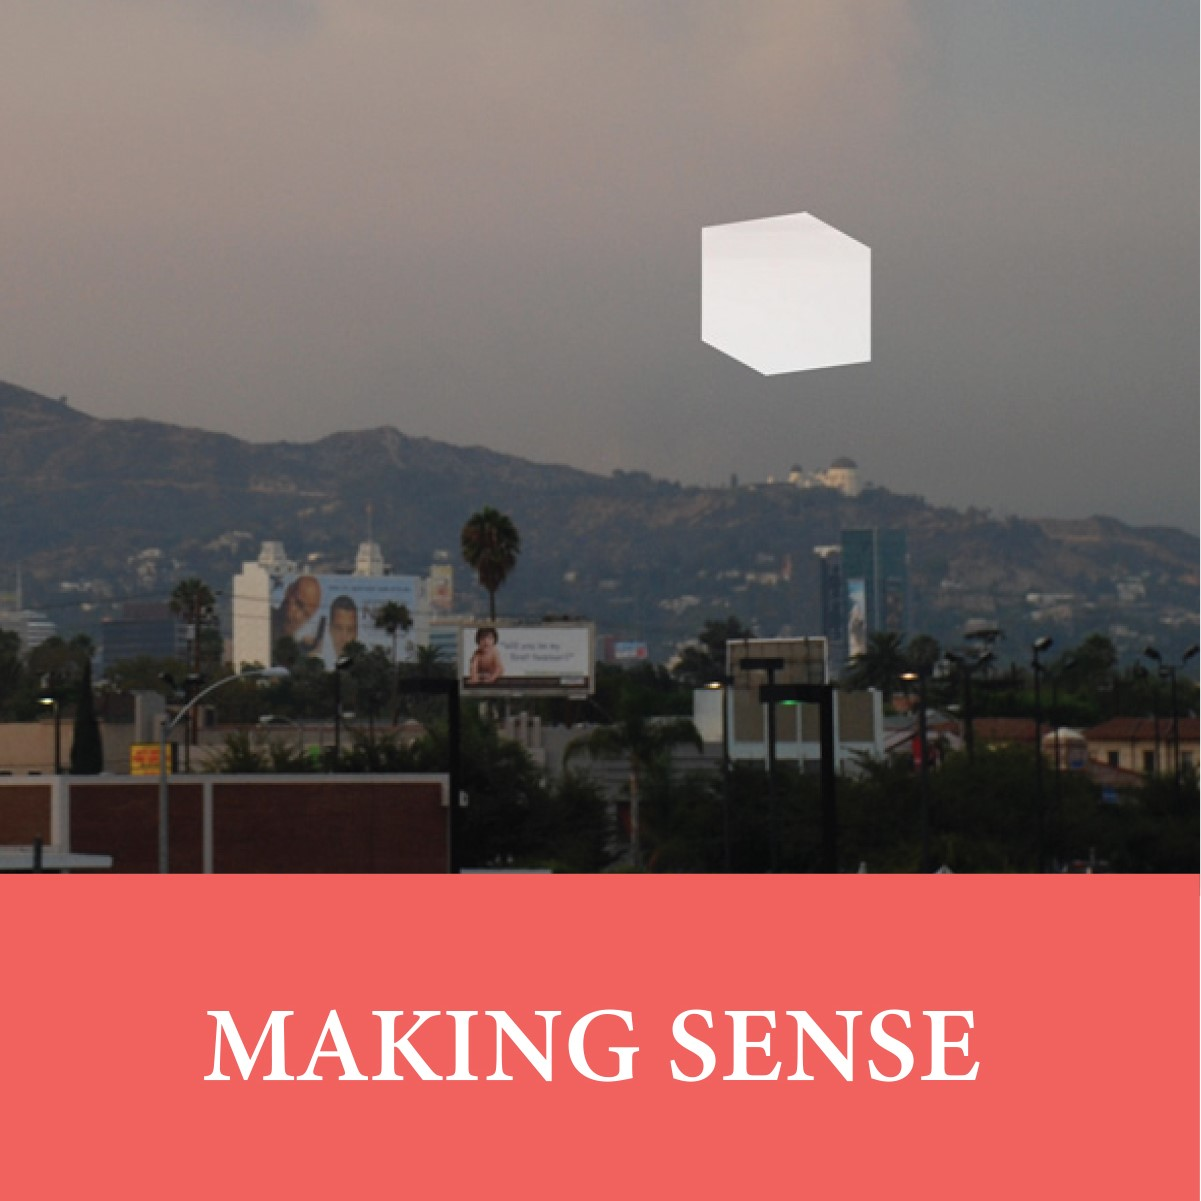 picture from Amy Balkin's Public Smog with red banner below with white text: Making Sense